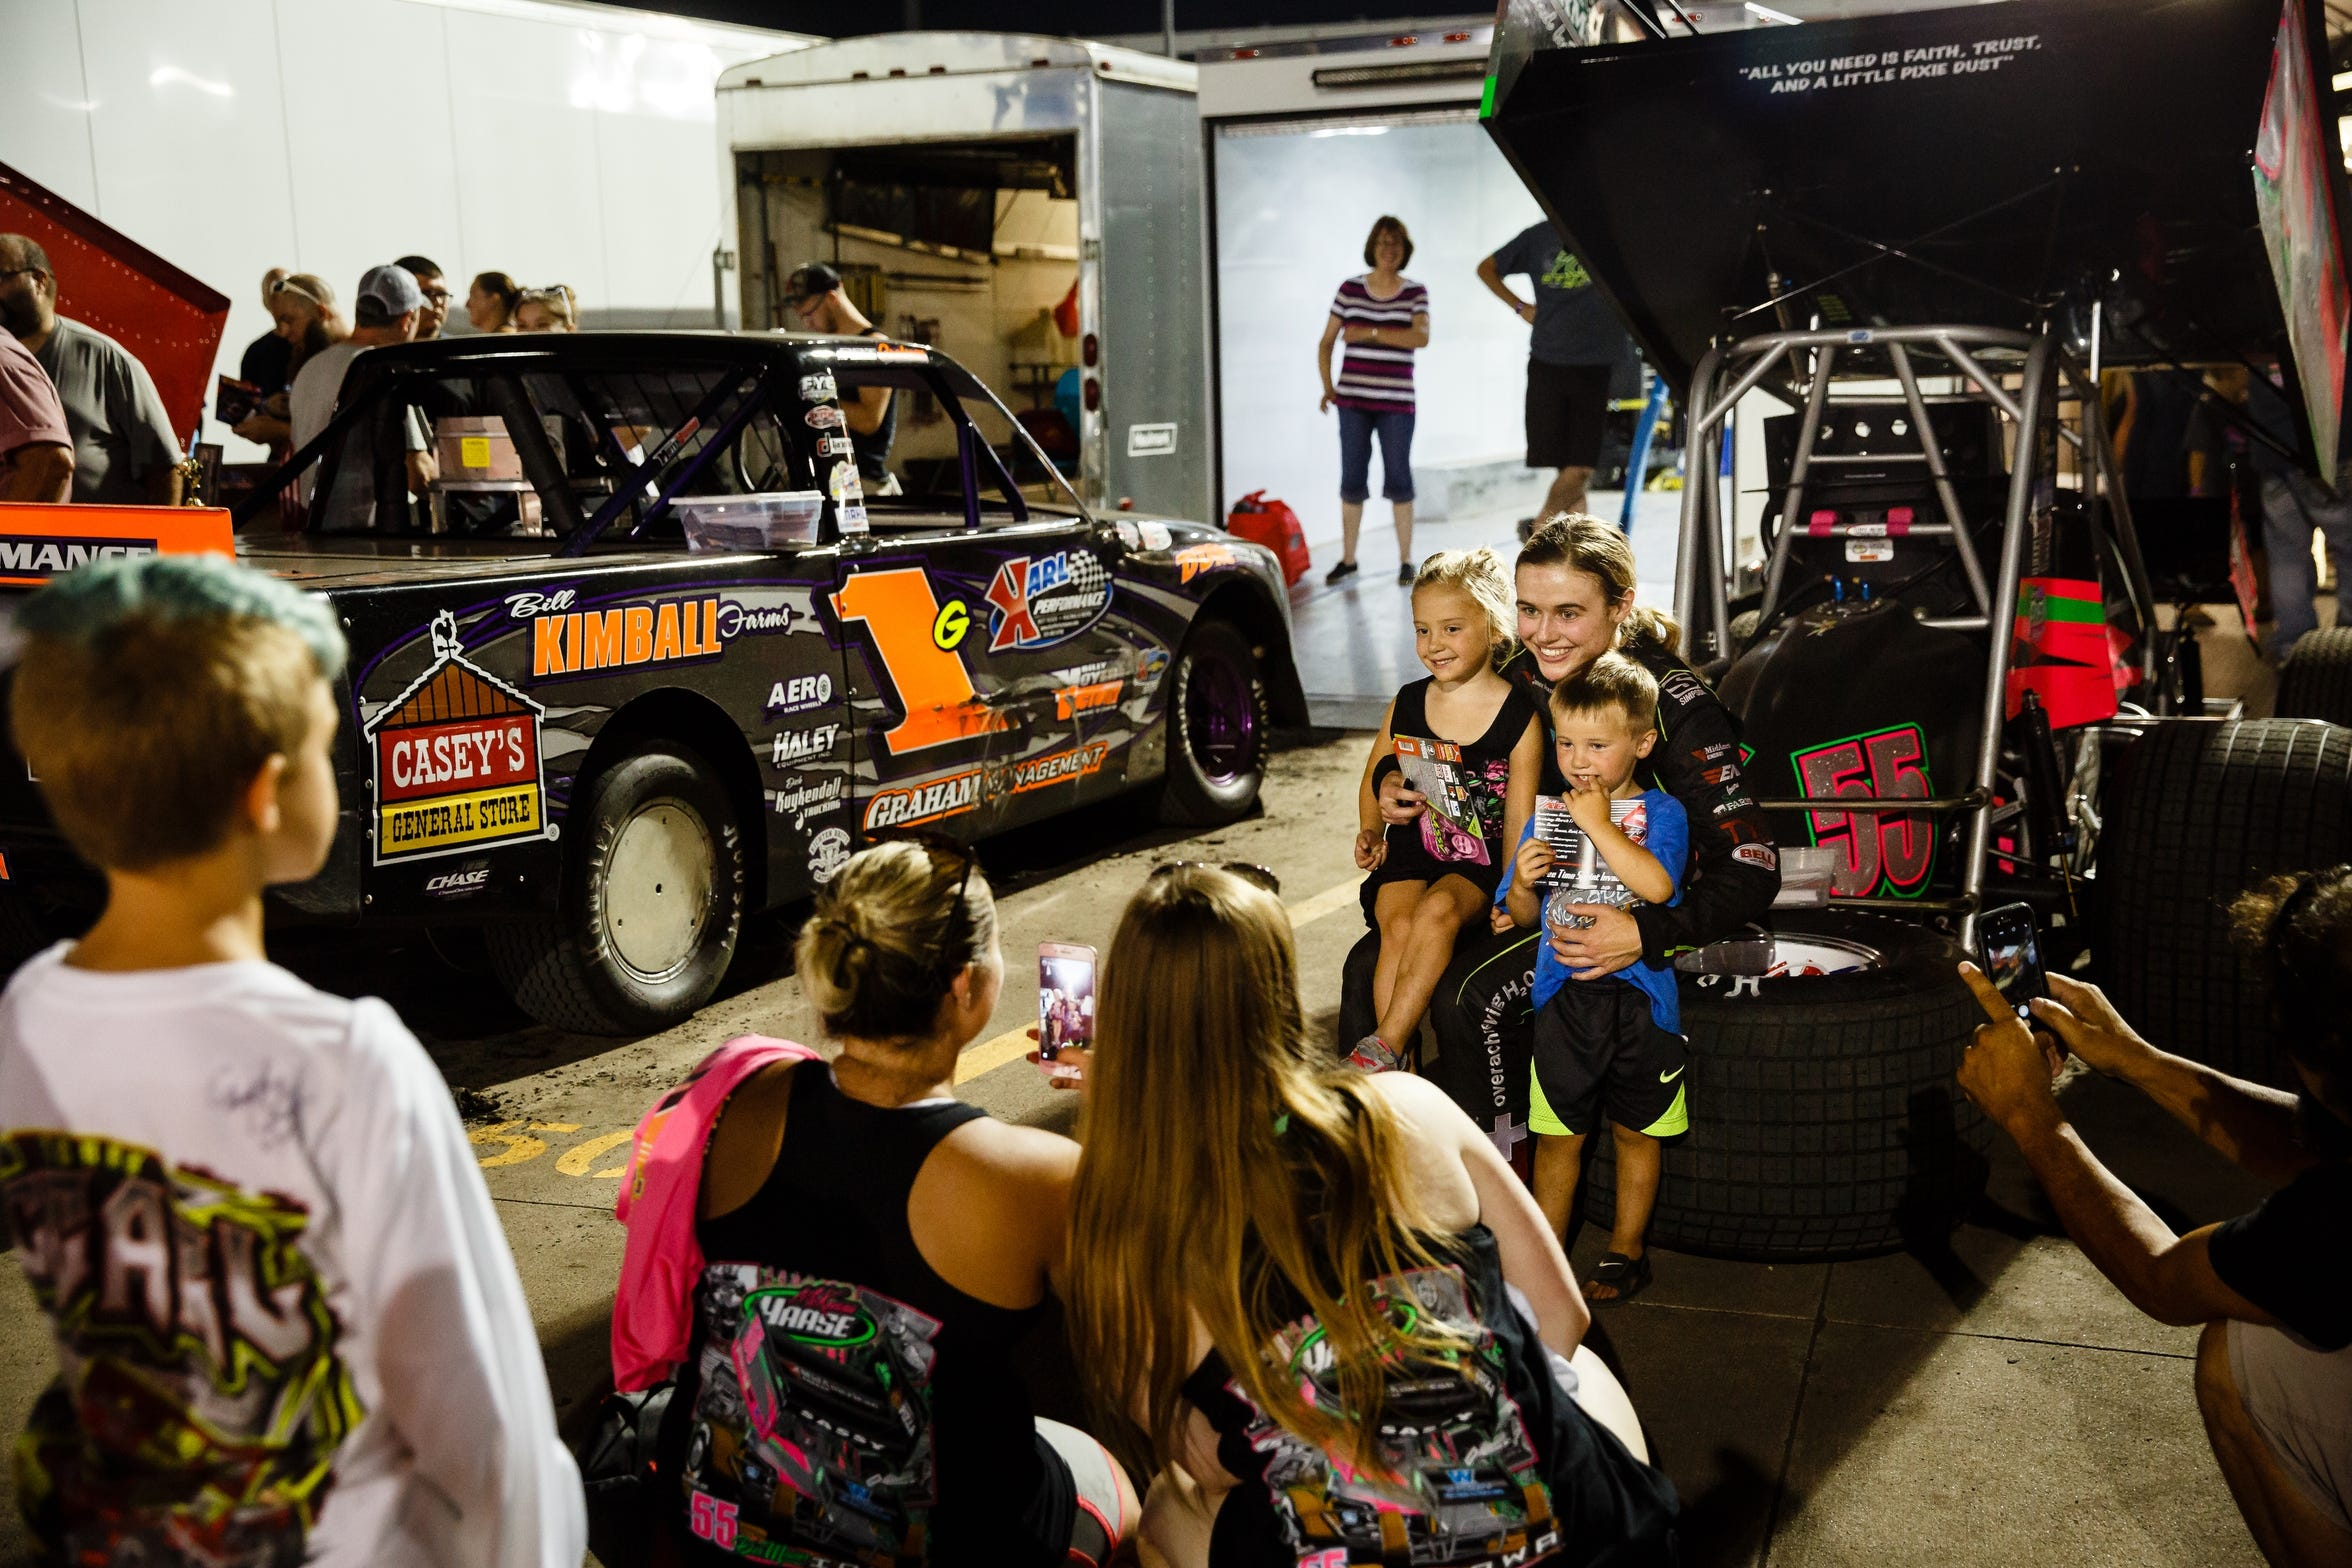 After races at Knoxville, families line up to get photos and autographs from sprint car driver McKenna Haase behind her car on Saturday, July 14, 2018.